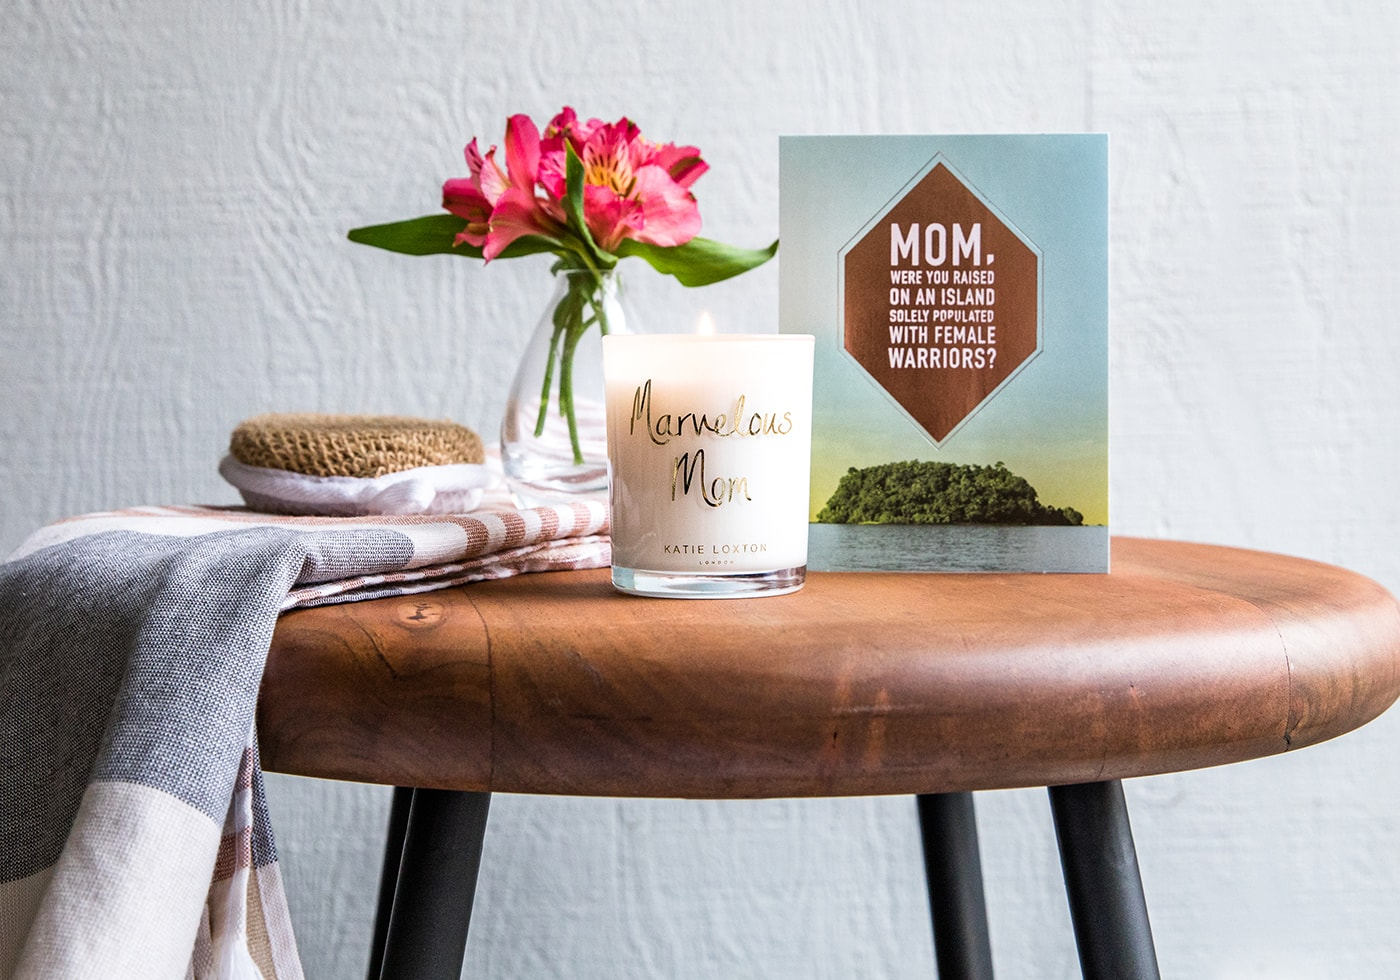 Marvelous Mom candle and card